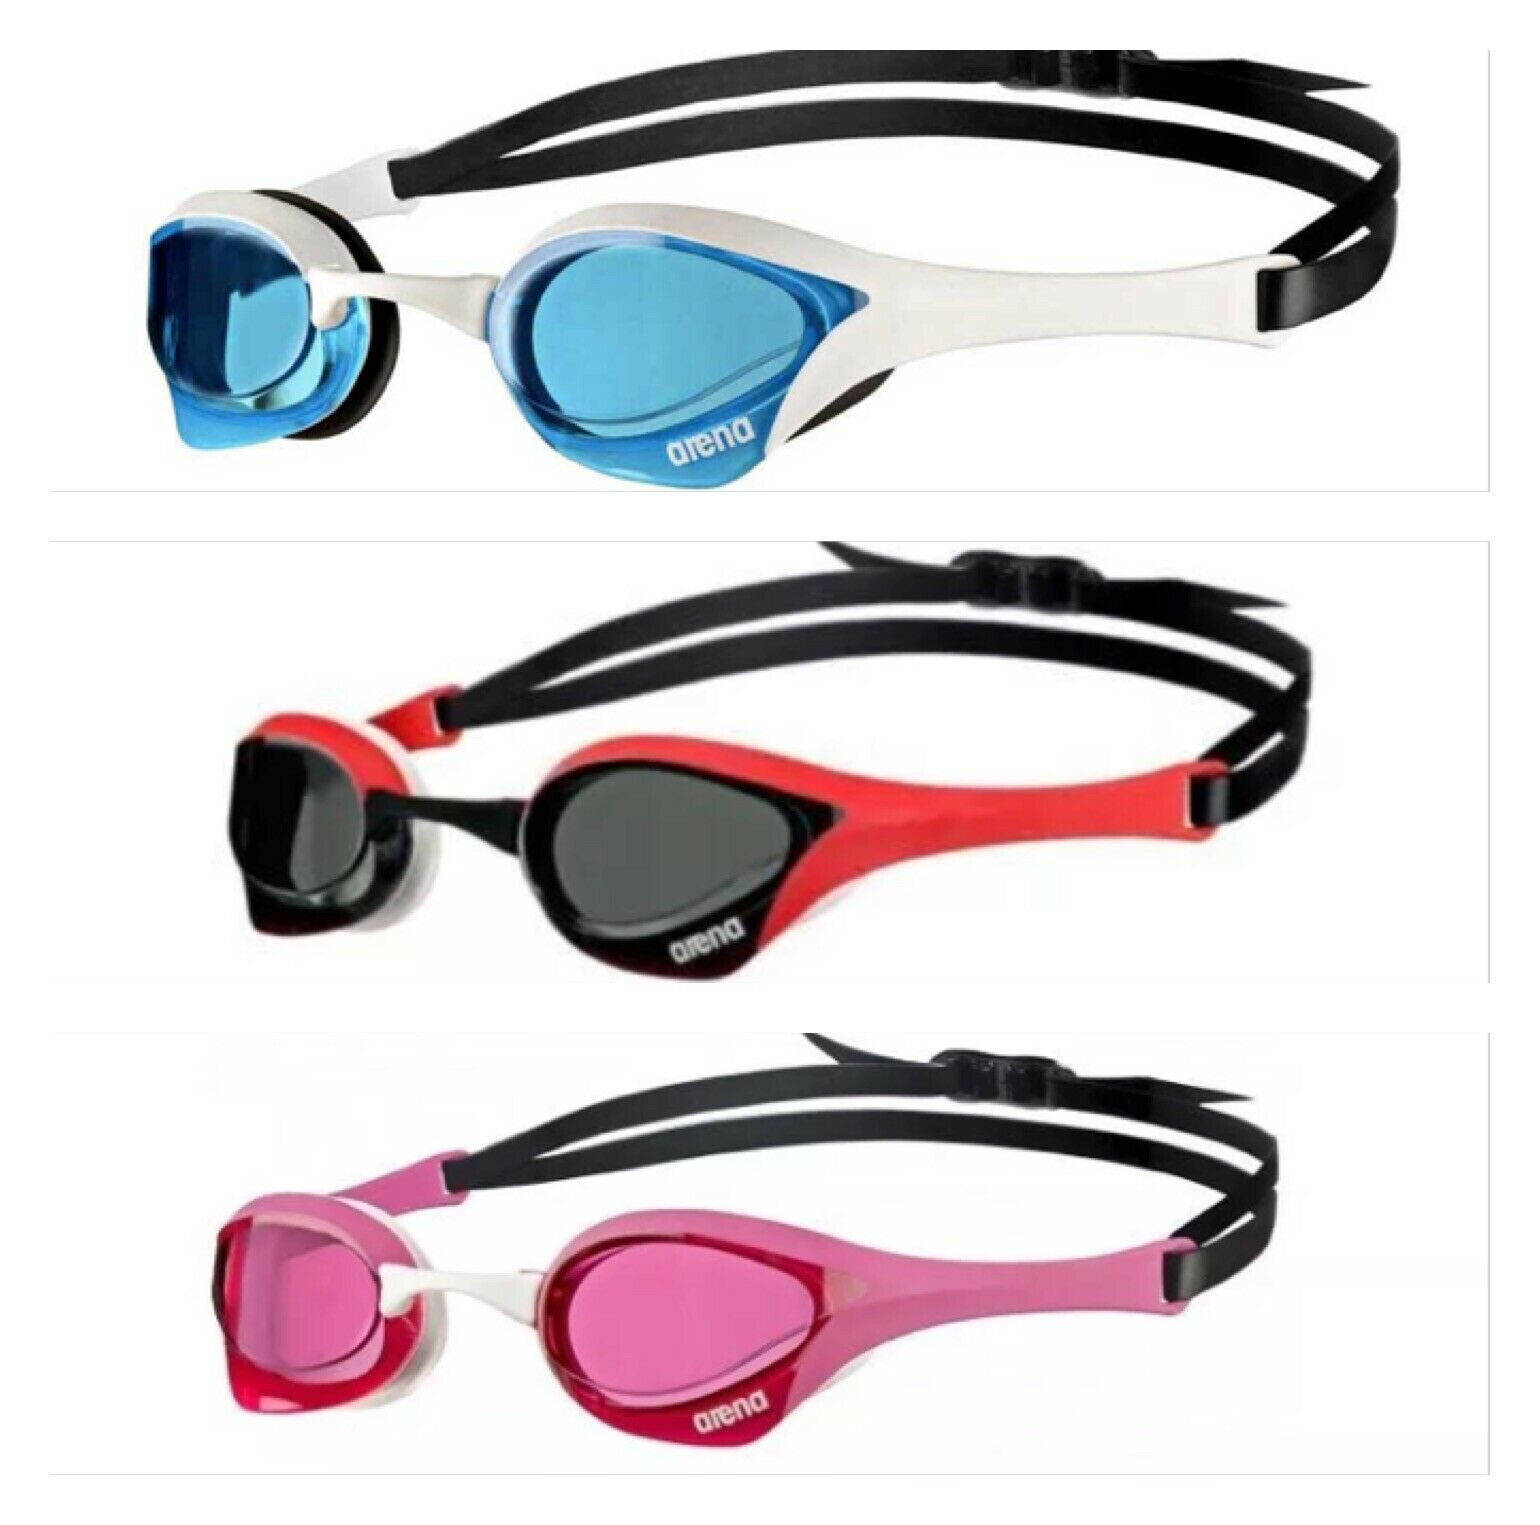 Cobra Mirror Swim Goggles